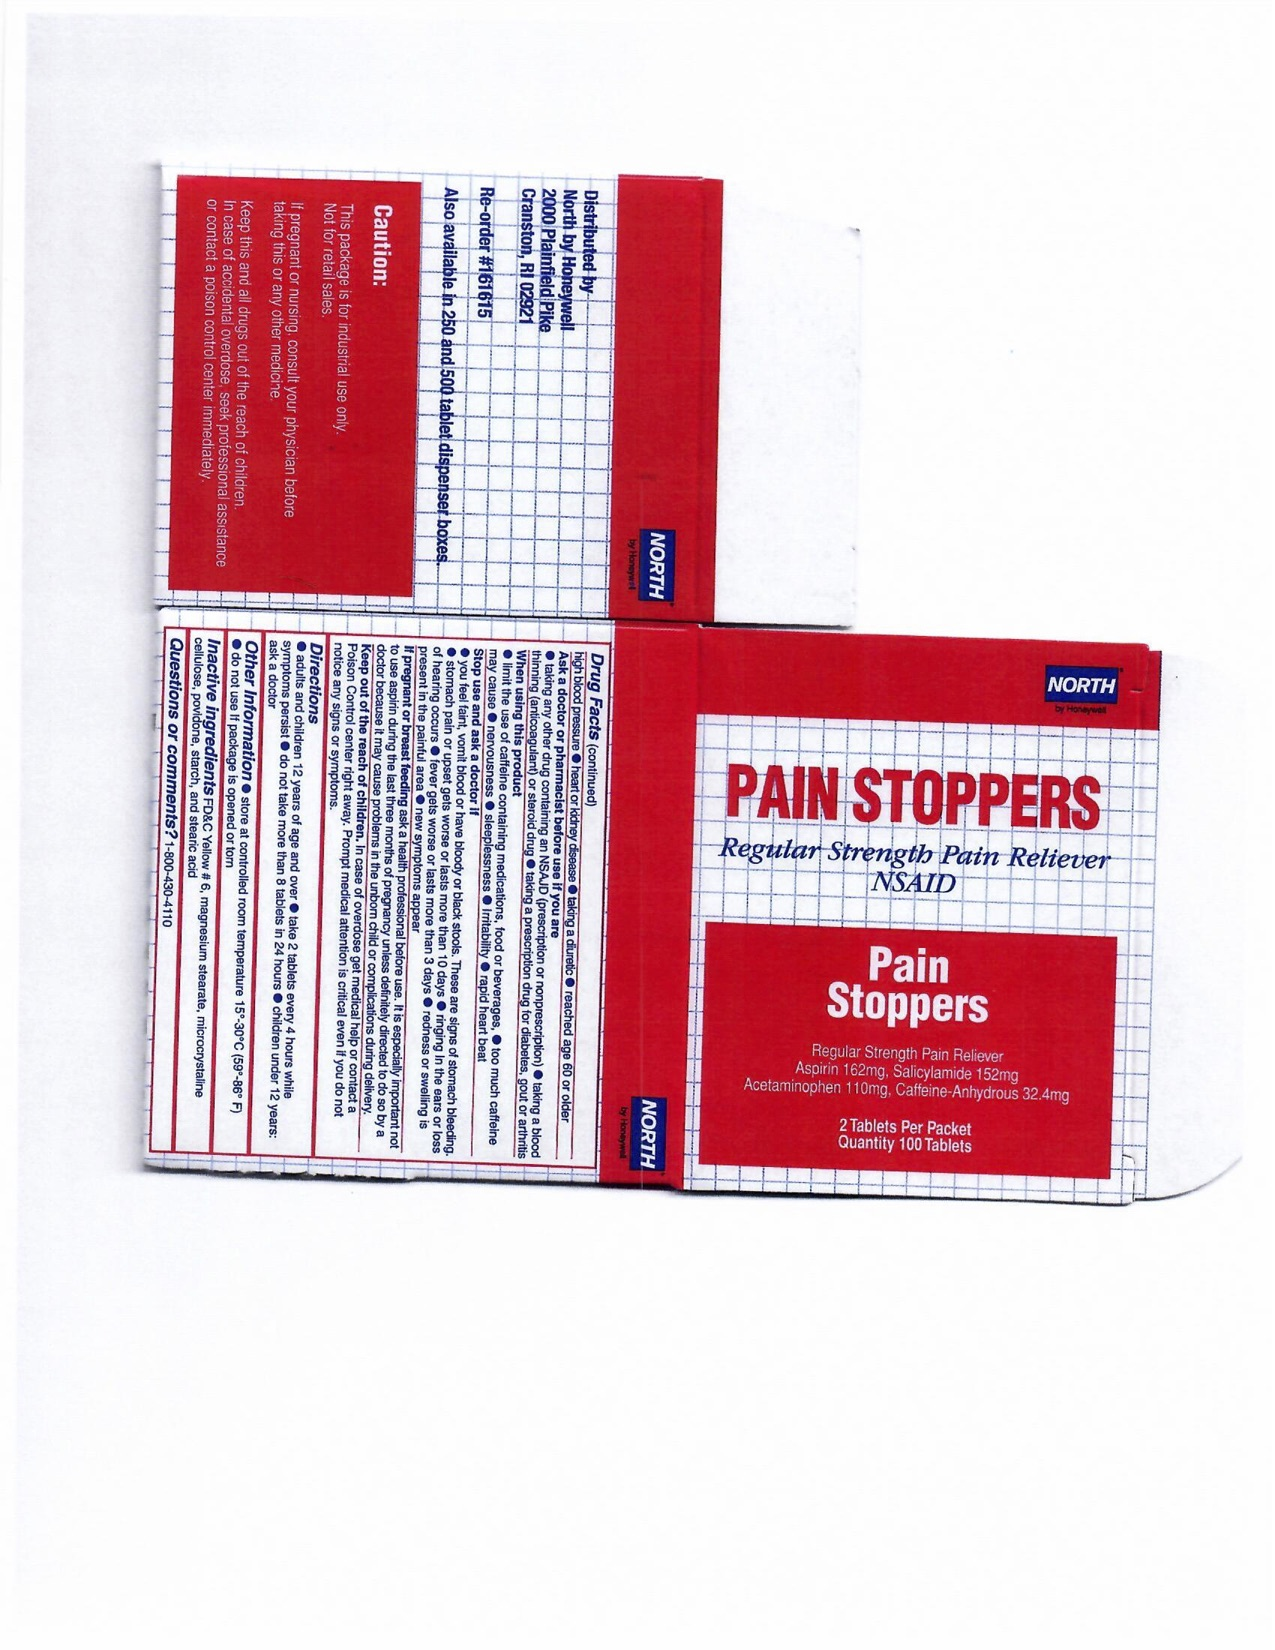 Pain stoppers 100CT